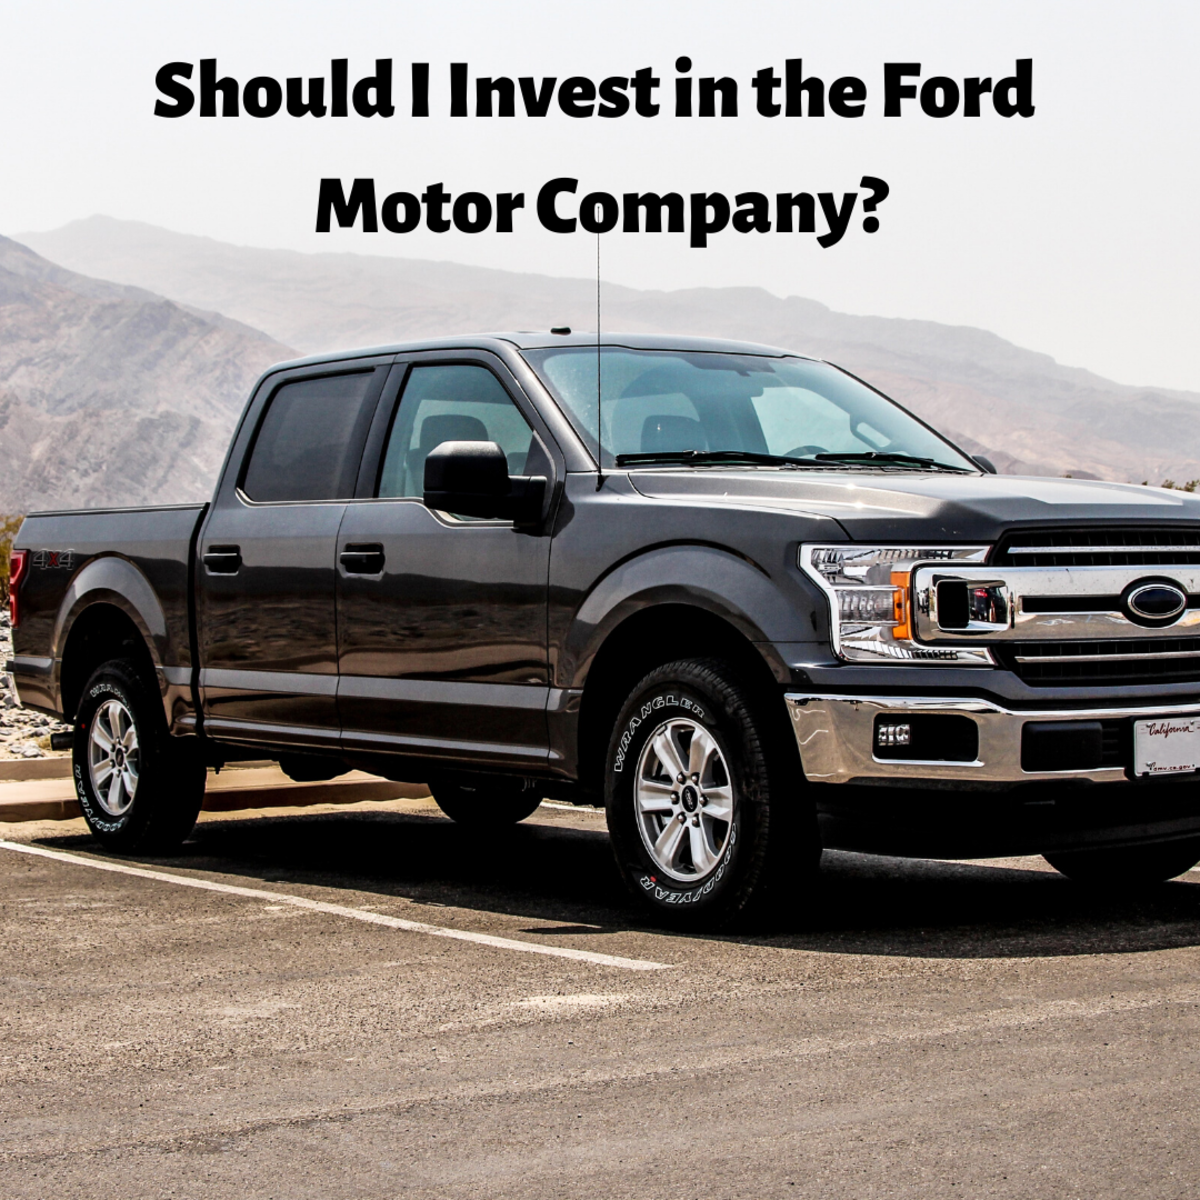 Should I Invest in Shares in the Ford Motor Company?